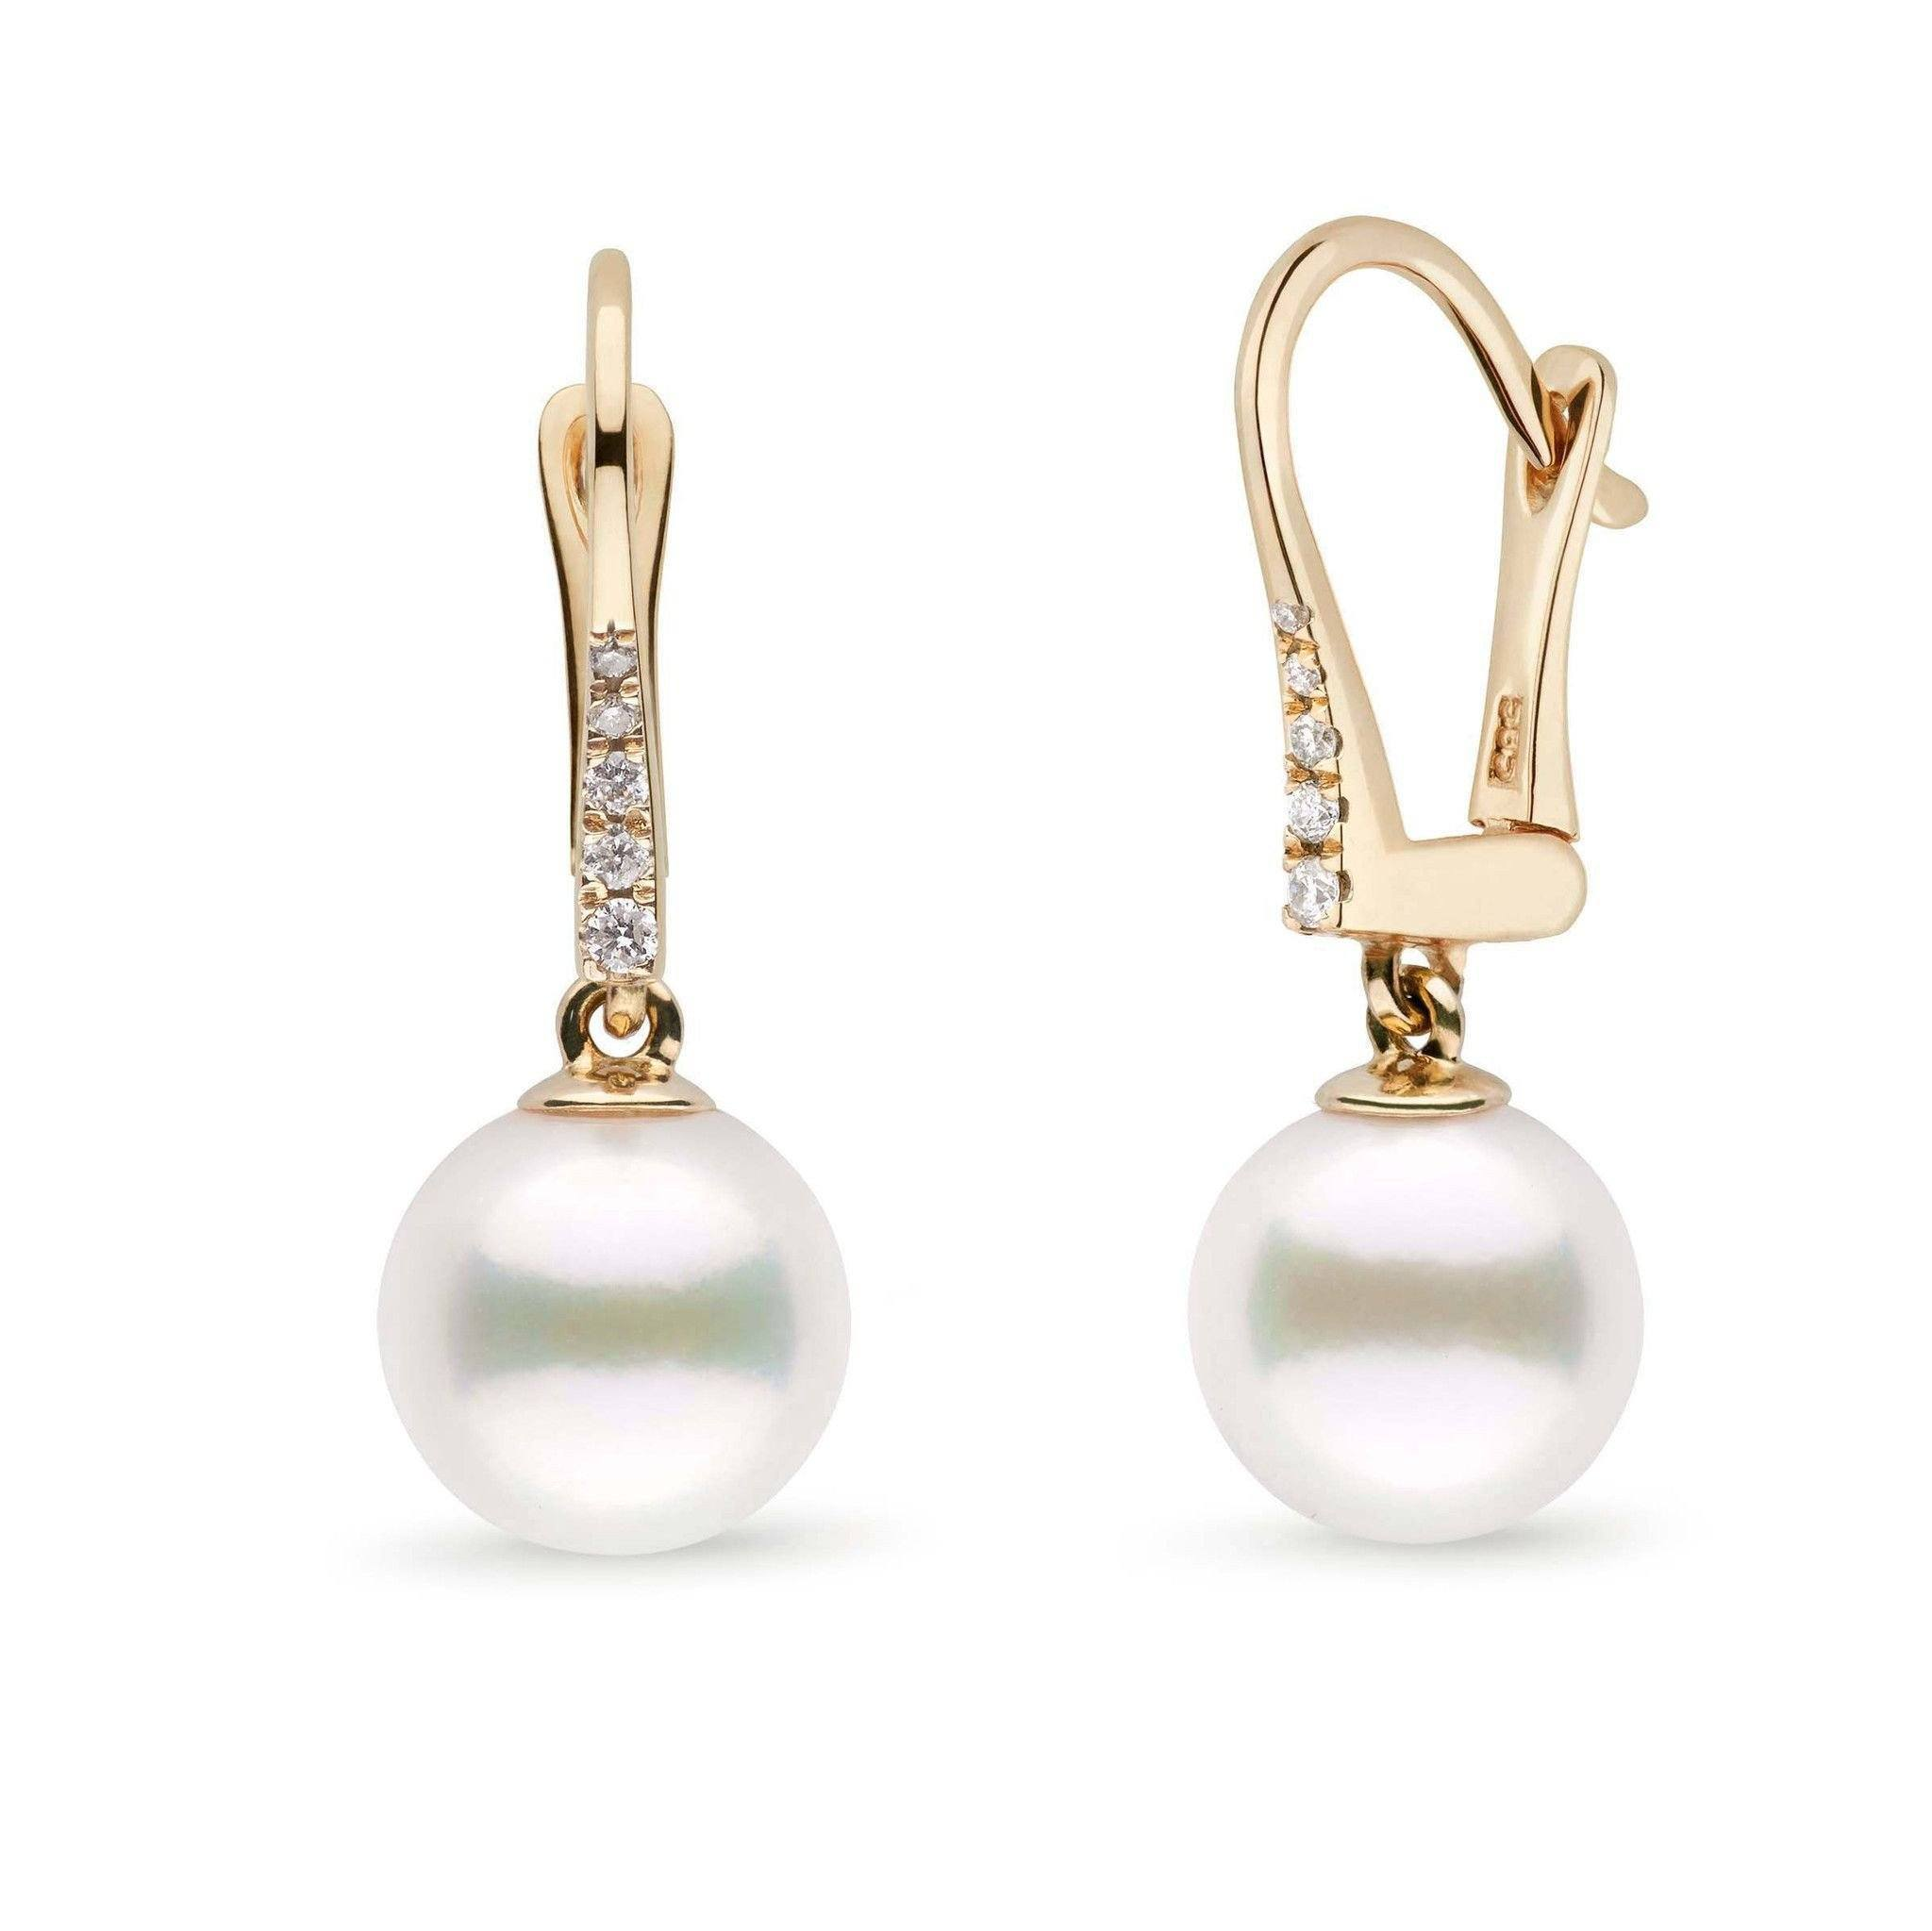 Allure Collection White Freshadama Freshwater 9.0-10.0 mm Pearl & Diamond Dangle Earrings